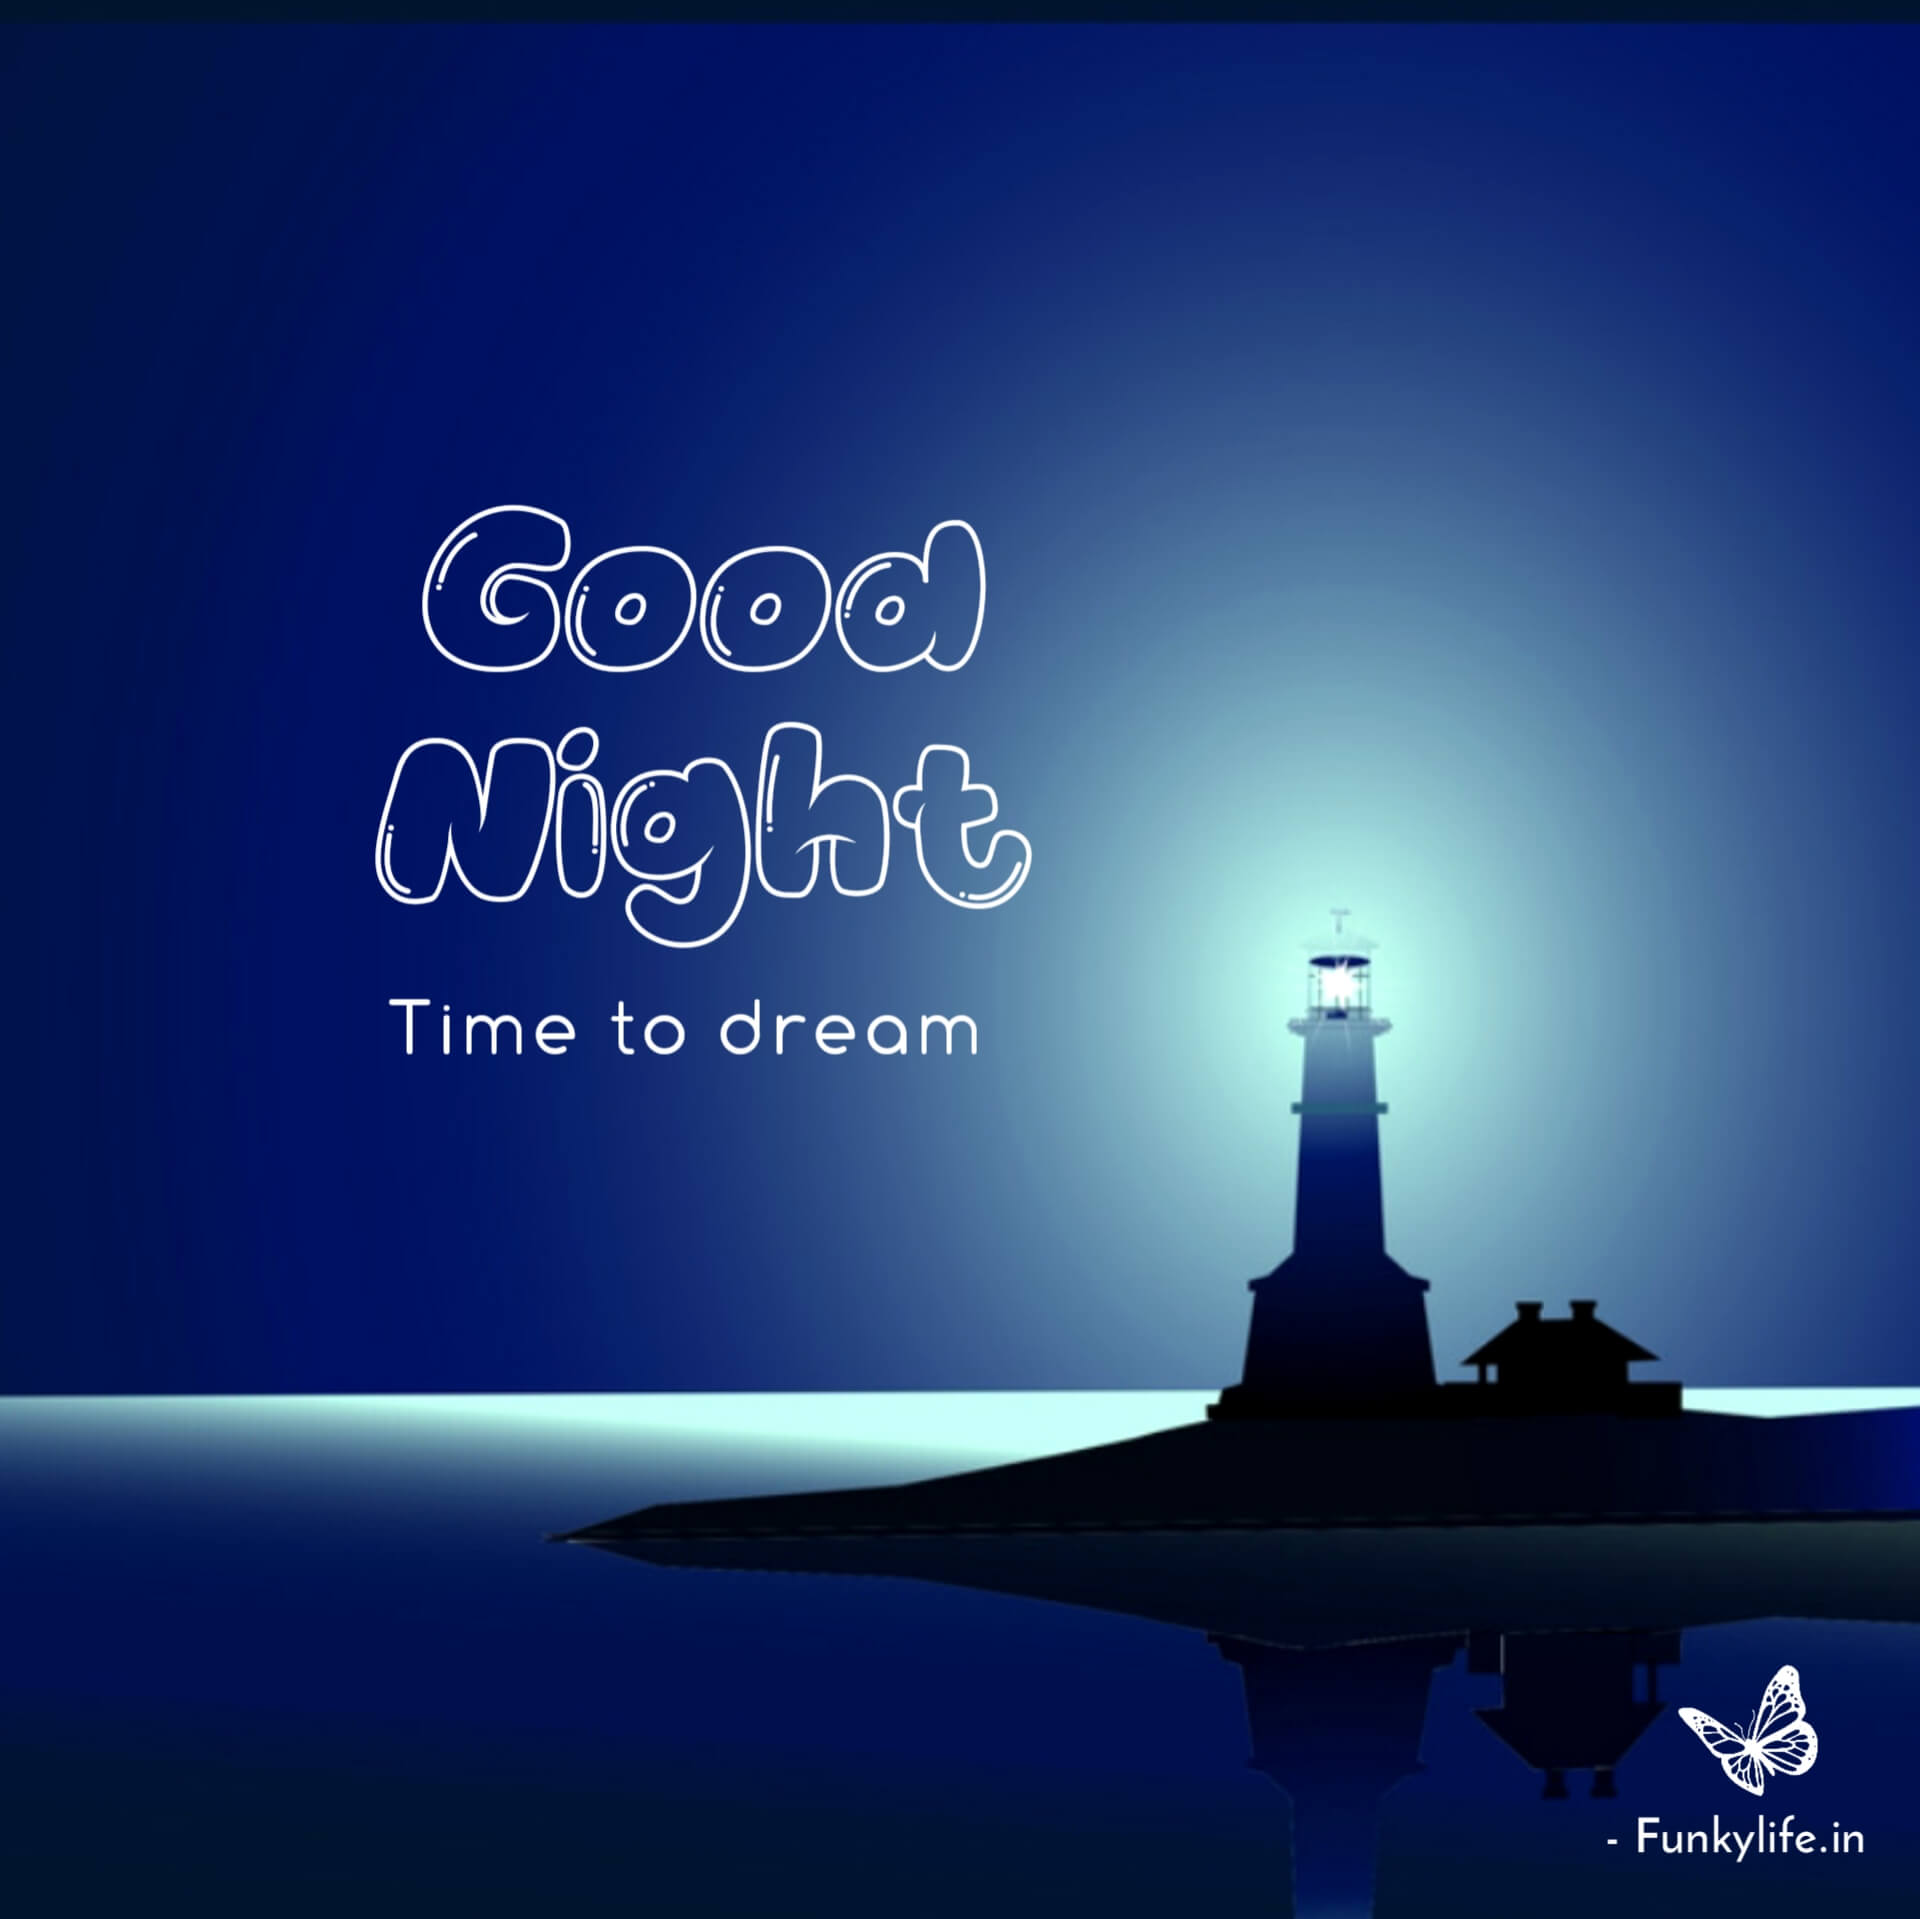 Night Wishes Images